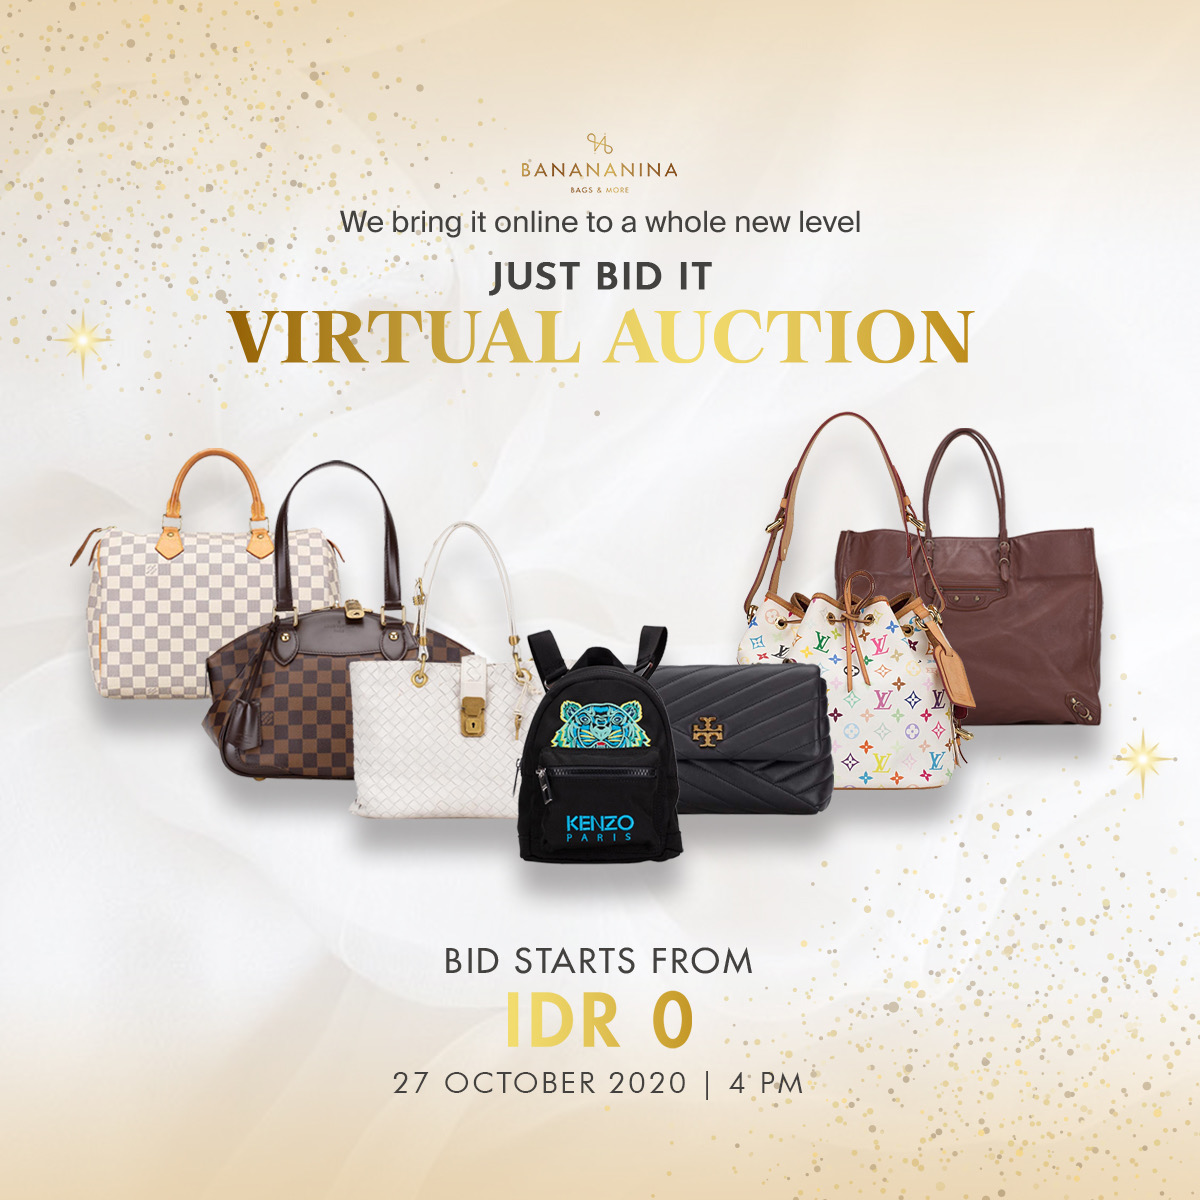 Review Produk : Banananina Virtual Auction, 27 Oktober 2020